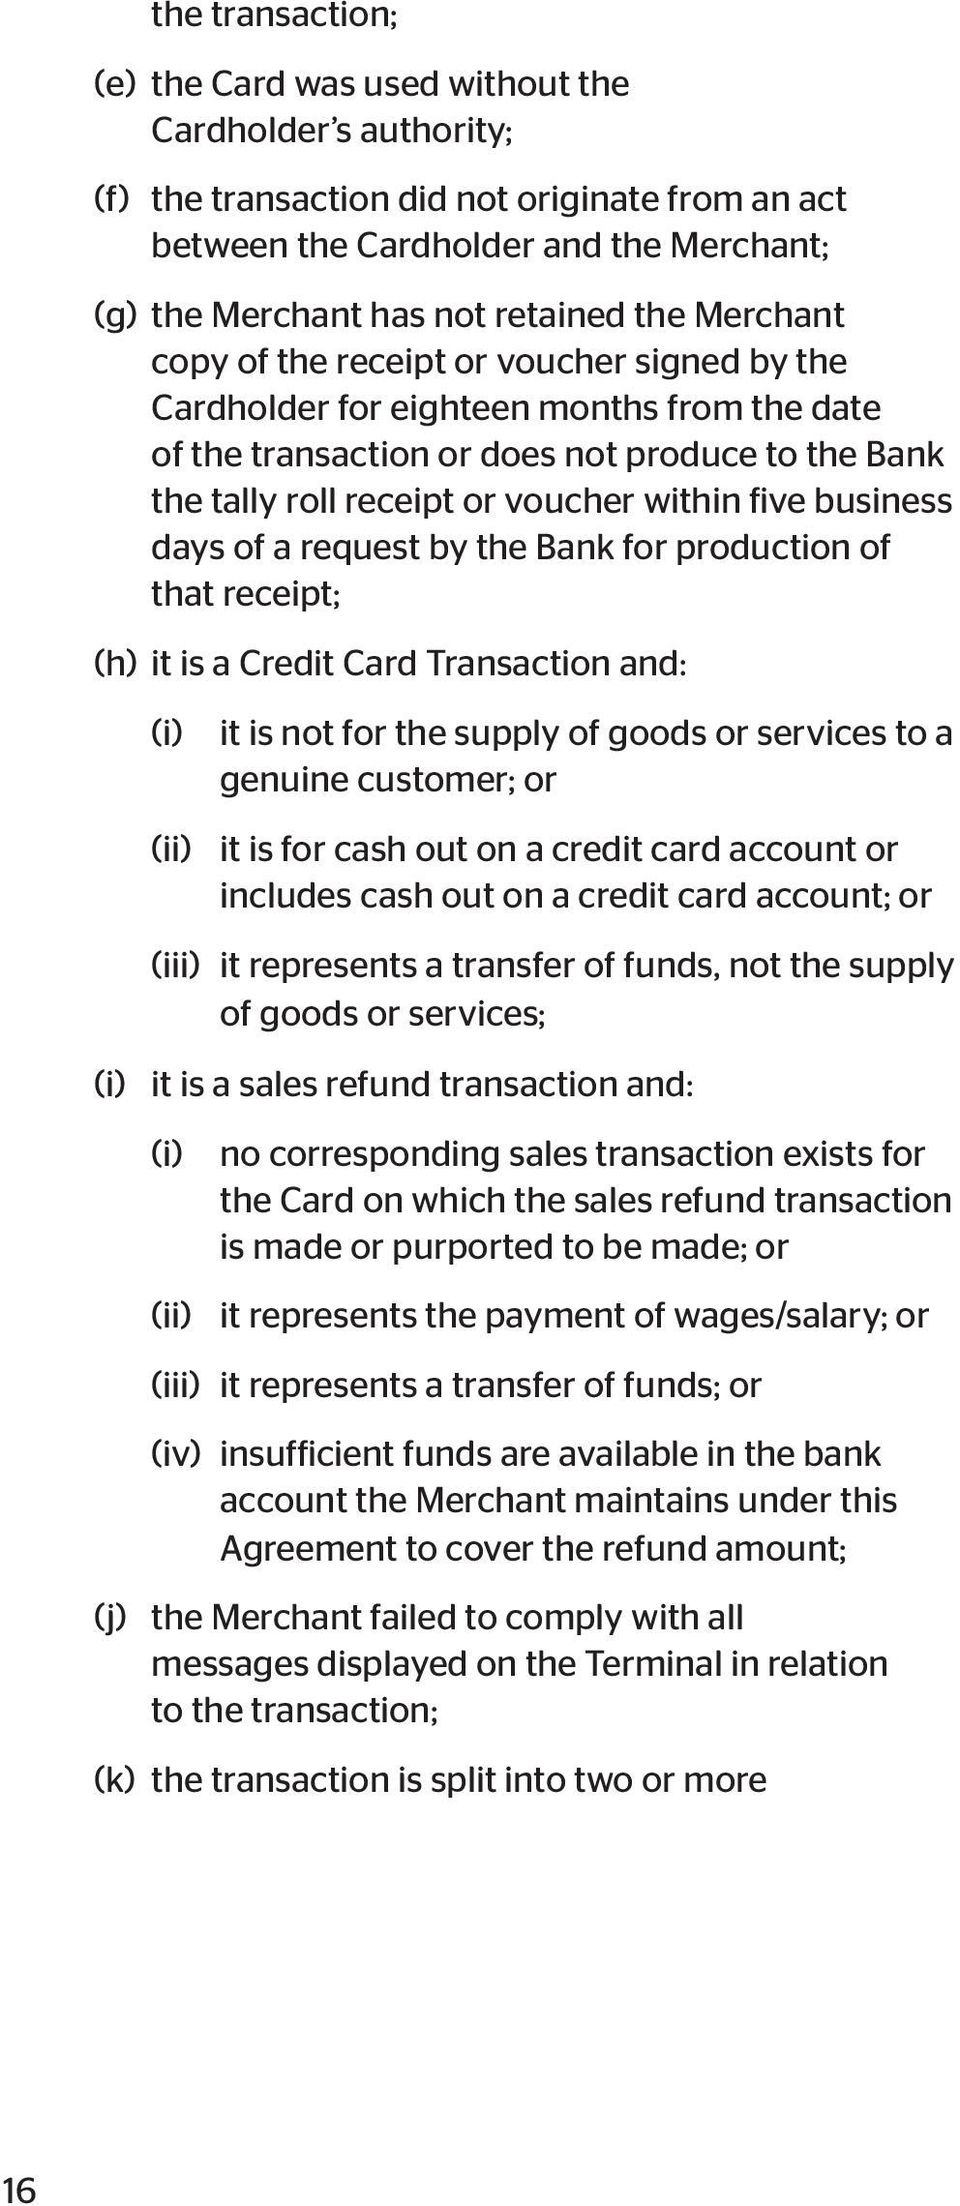 business days of a request by the Bank for production of that receipt; (h) it is a Credit Card Transaction and: (i) it is not for the supply of goods or services to a genuine customer; or (ii) it is